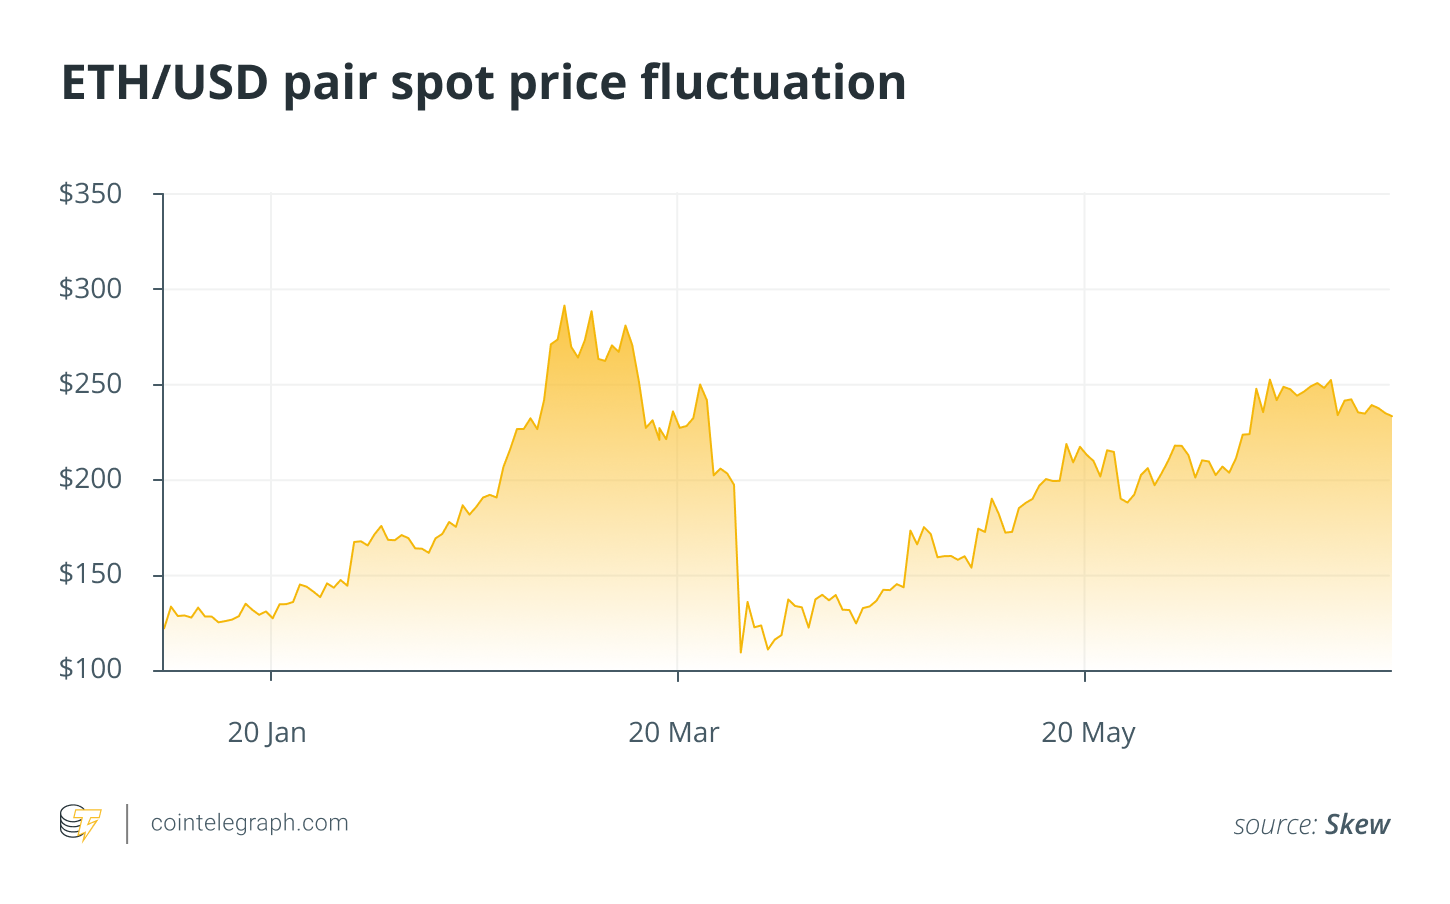 ETH/USD pair spot price fluctuation